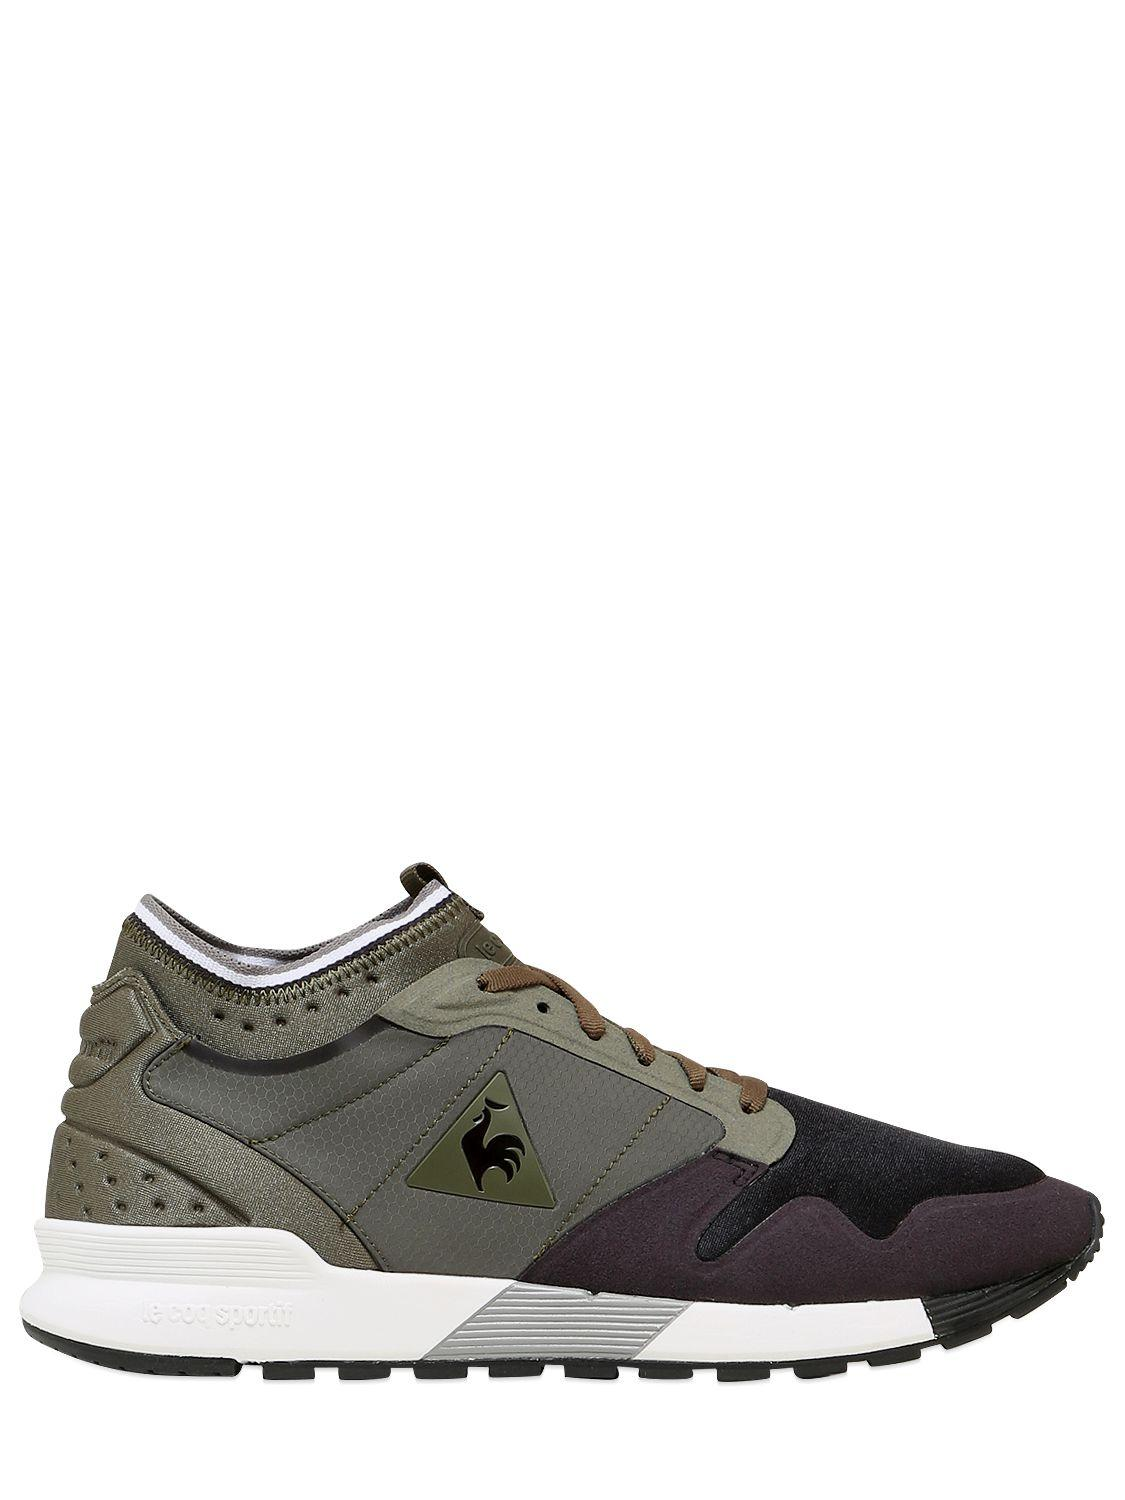 Le Coq Sportif Omicron Ripstop Nylon Sneakers for Men